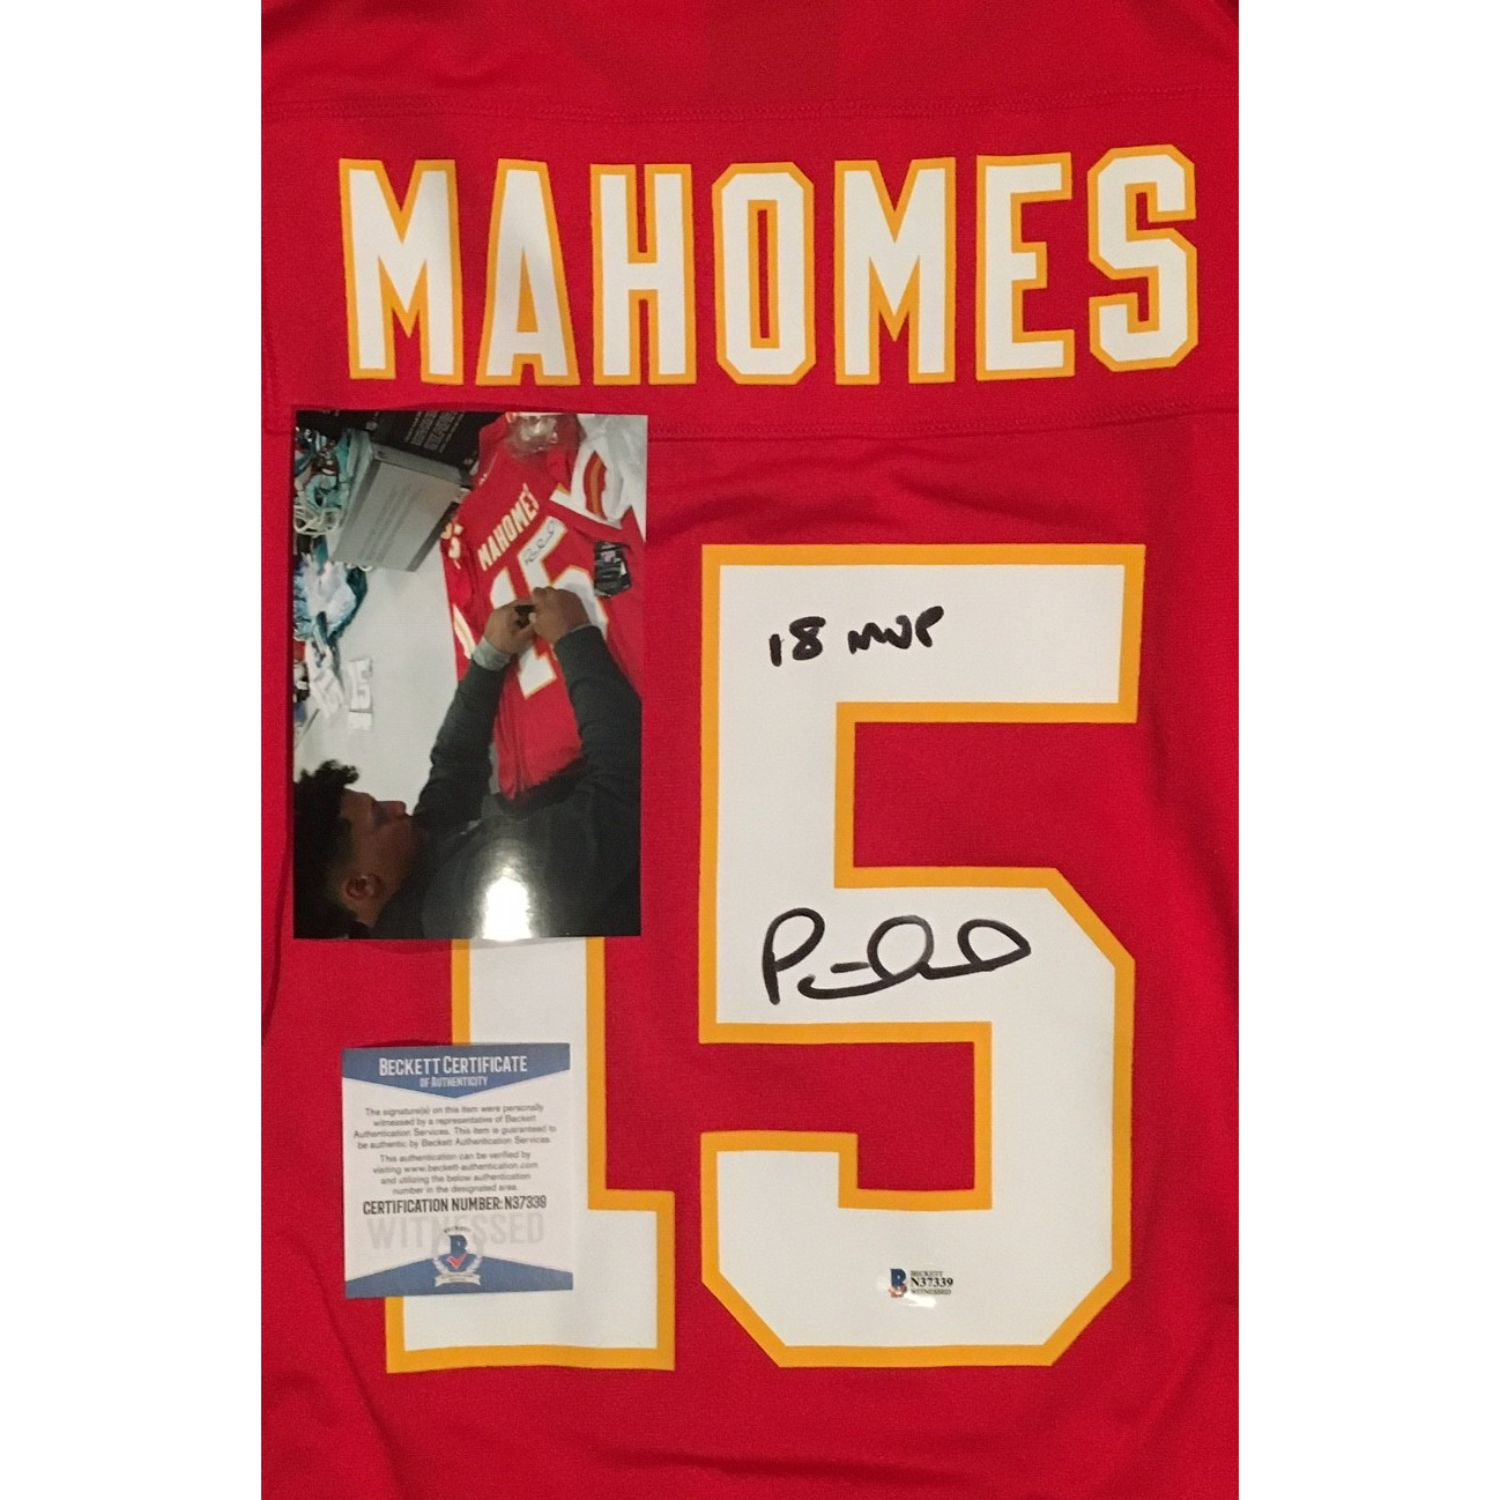 Patrick Mahomes Autographed Kansas City Chiefs Signed Nike Game Football Red XL Jersey 18 NFL MVP BAS Beckett COA